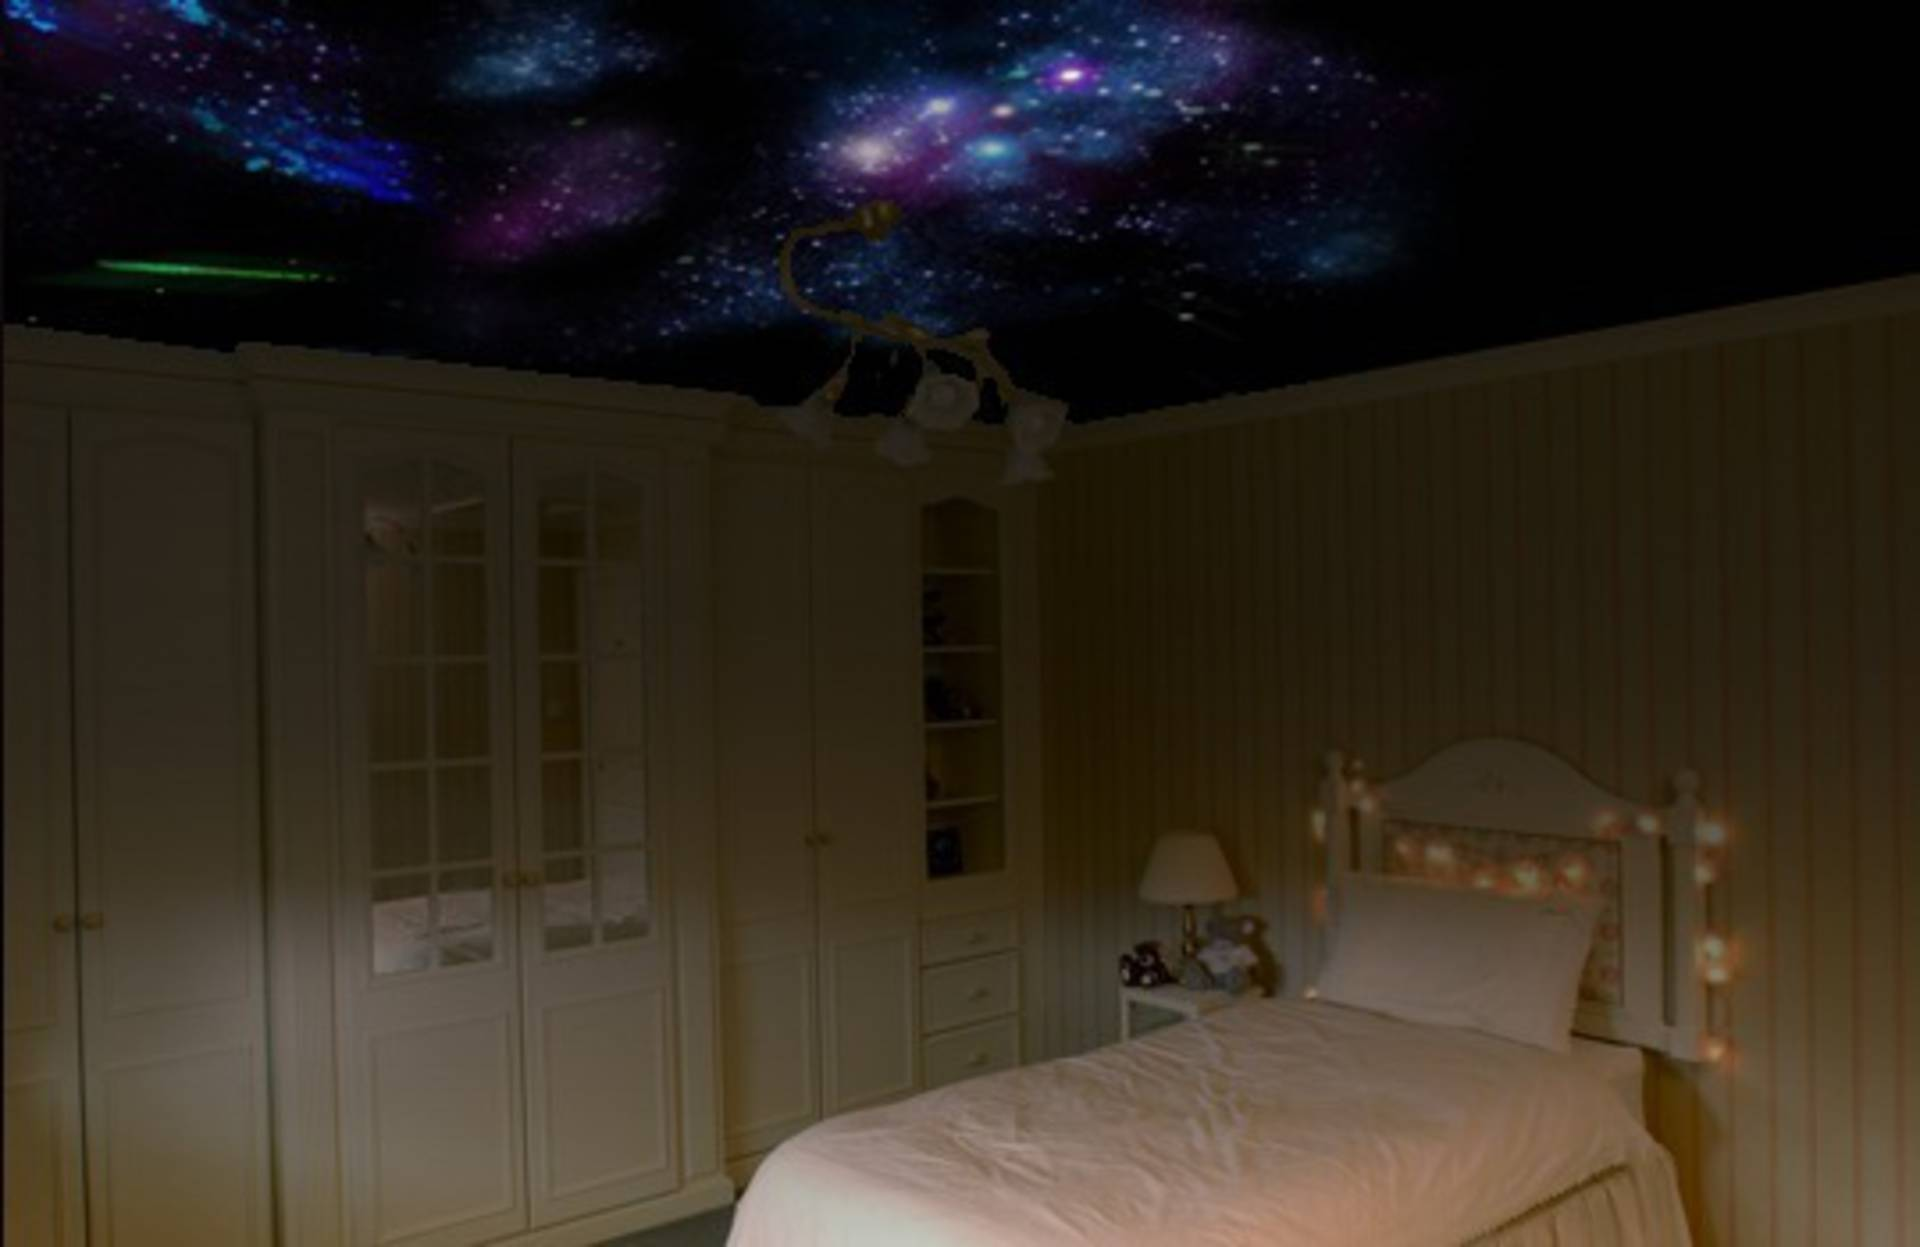 Night Starry Sky On Your Bedrooms Ceiling How To Home Reviews - How-to-make-a-starry-night-ceiling-in-the-bedroom